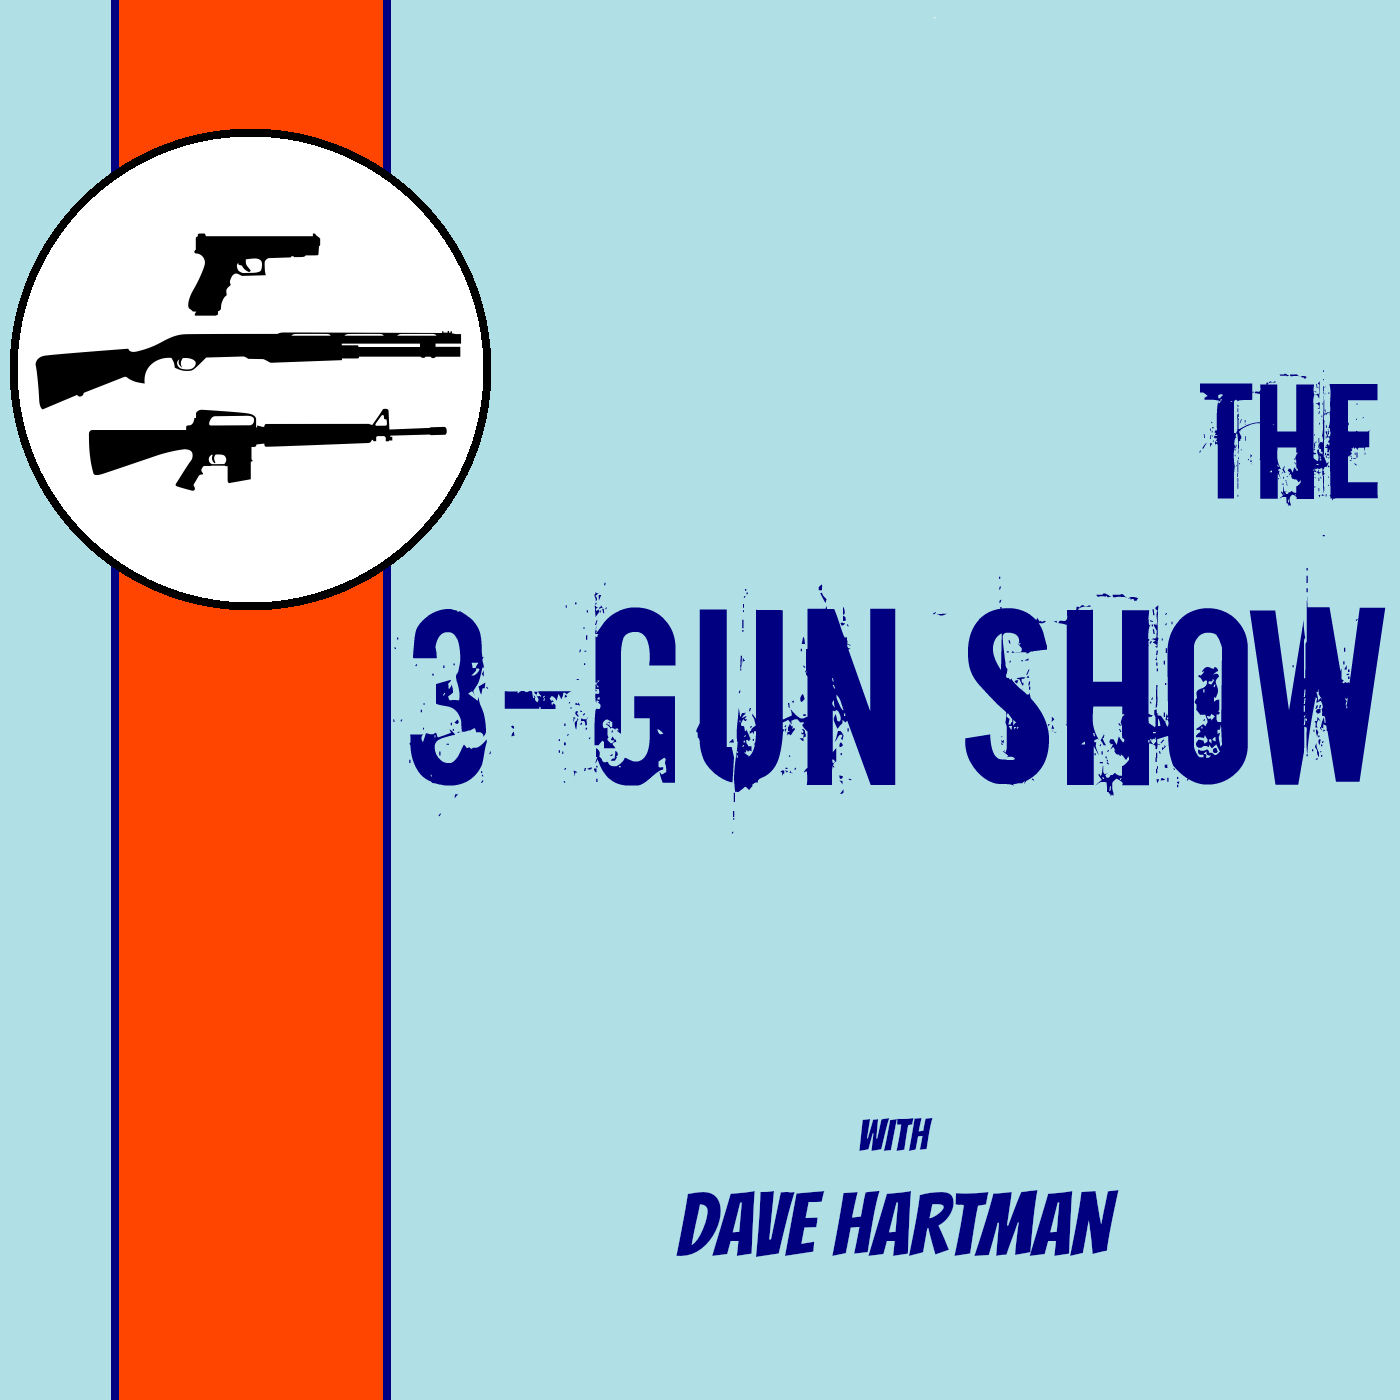 The 3-Gun Show with Dave Hartman